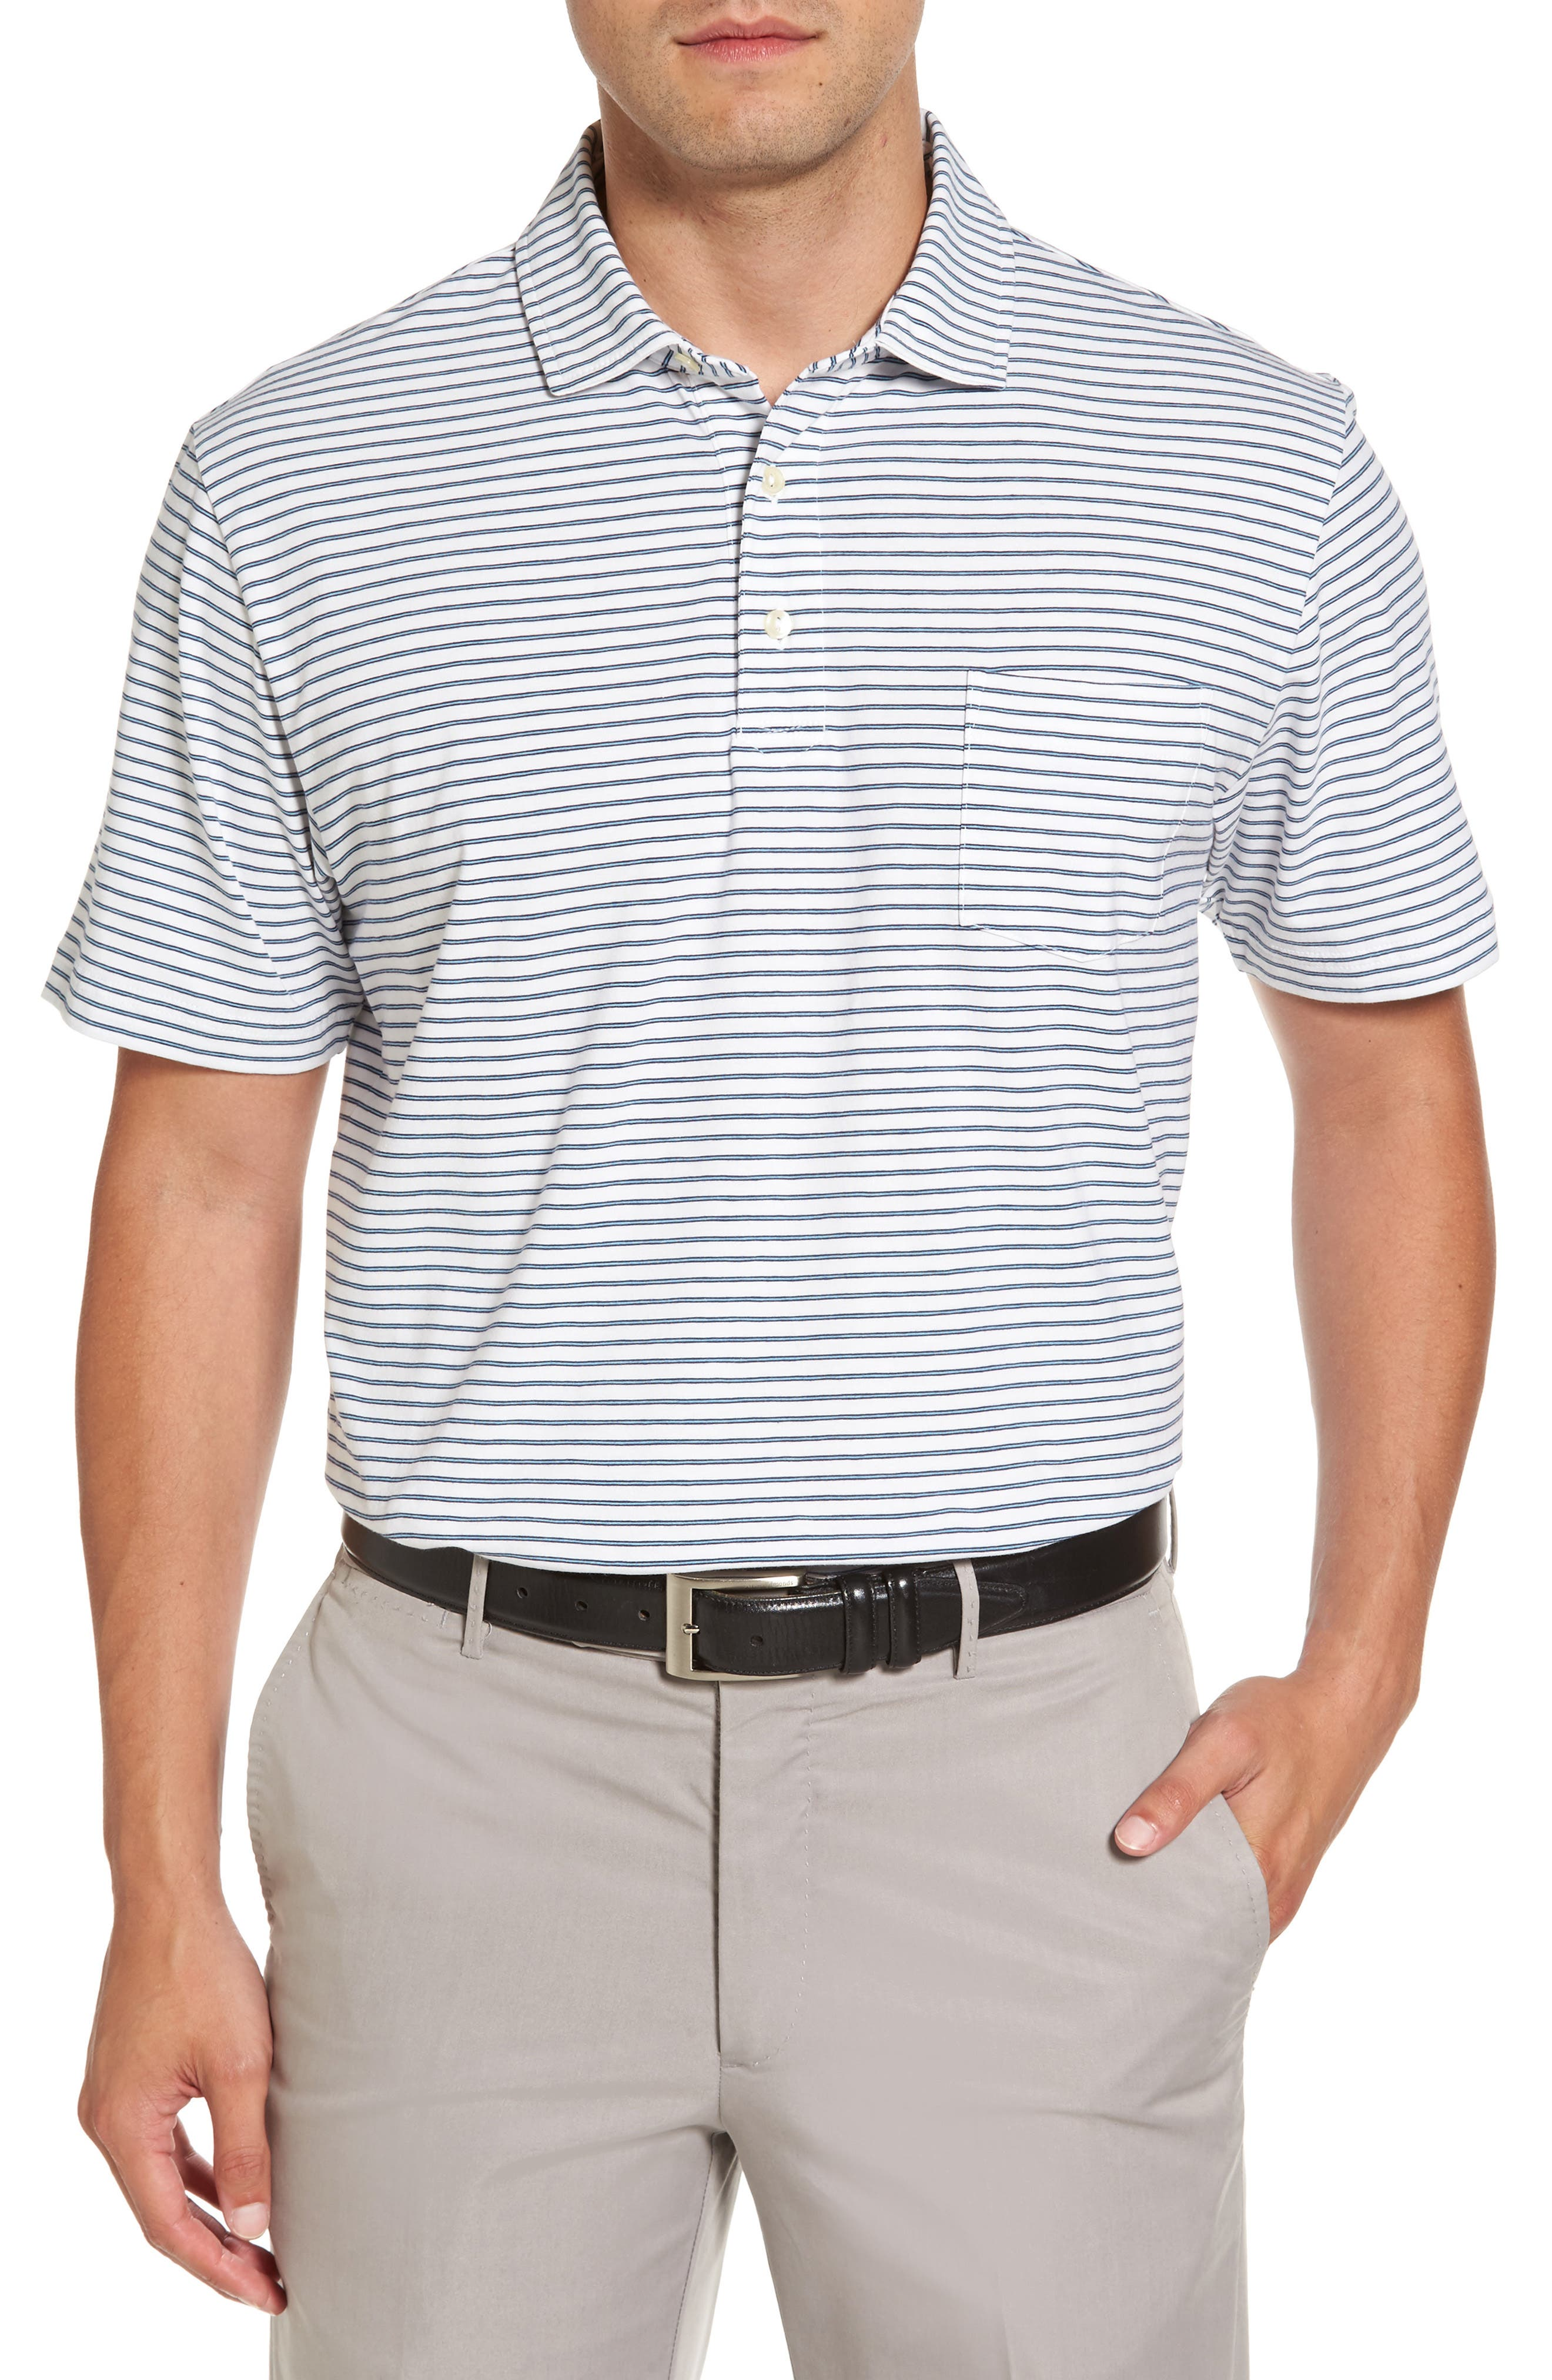 Alternate Image 1 Selected - Peter Millar Stratton Mountainside Stripe Jersey Polo